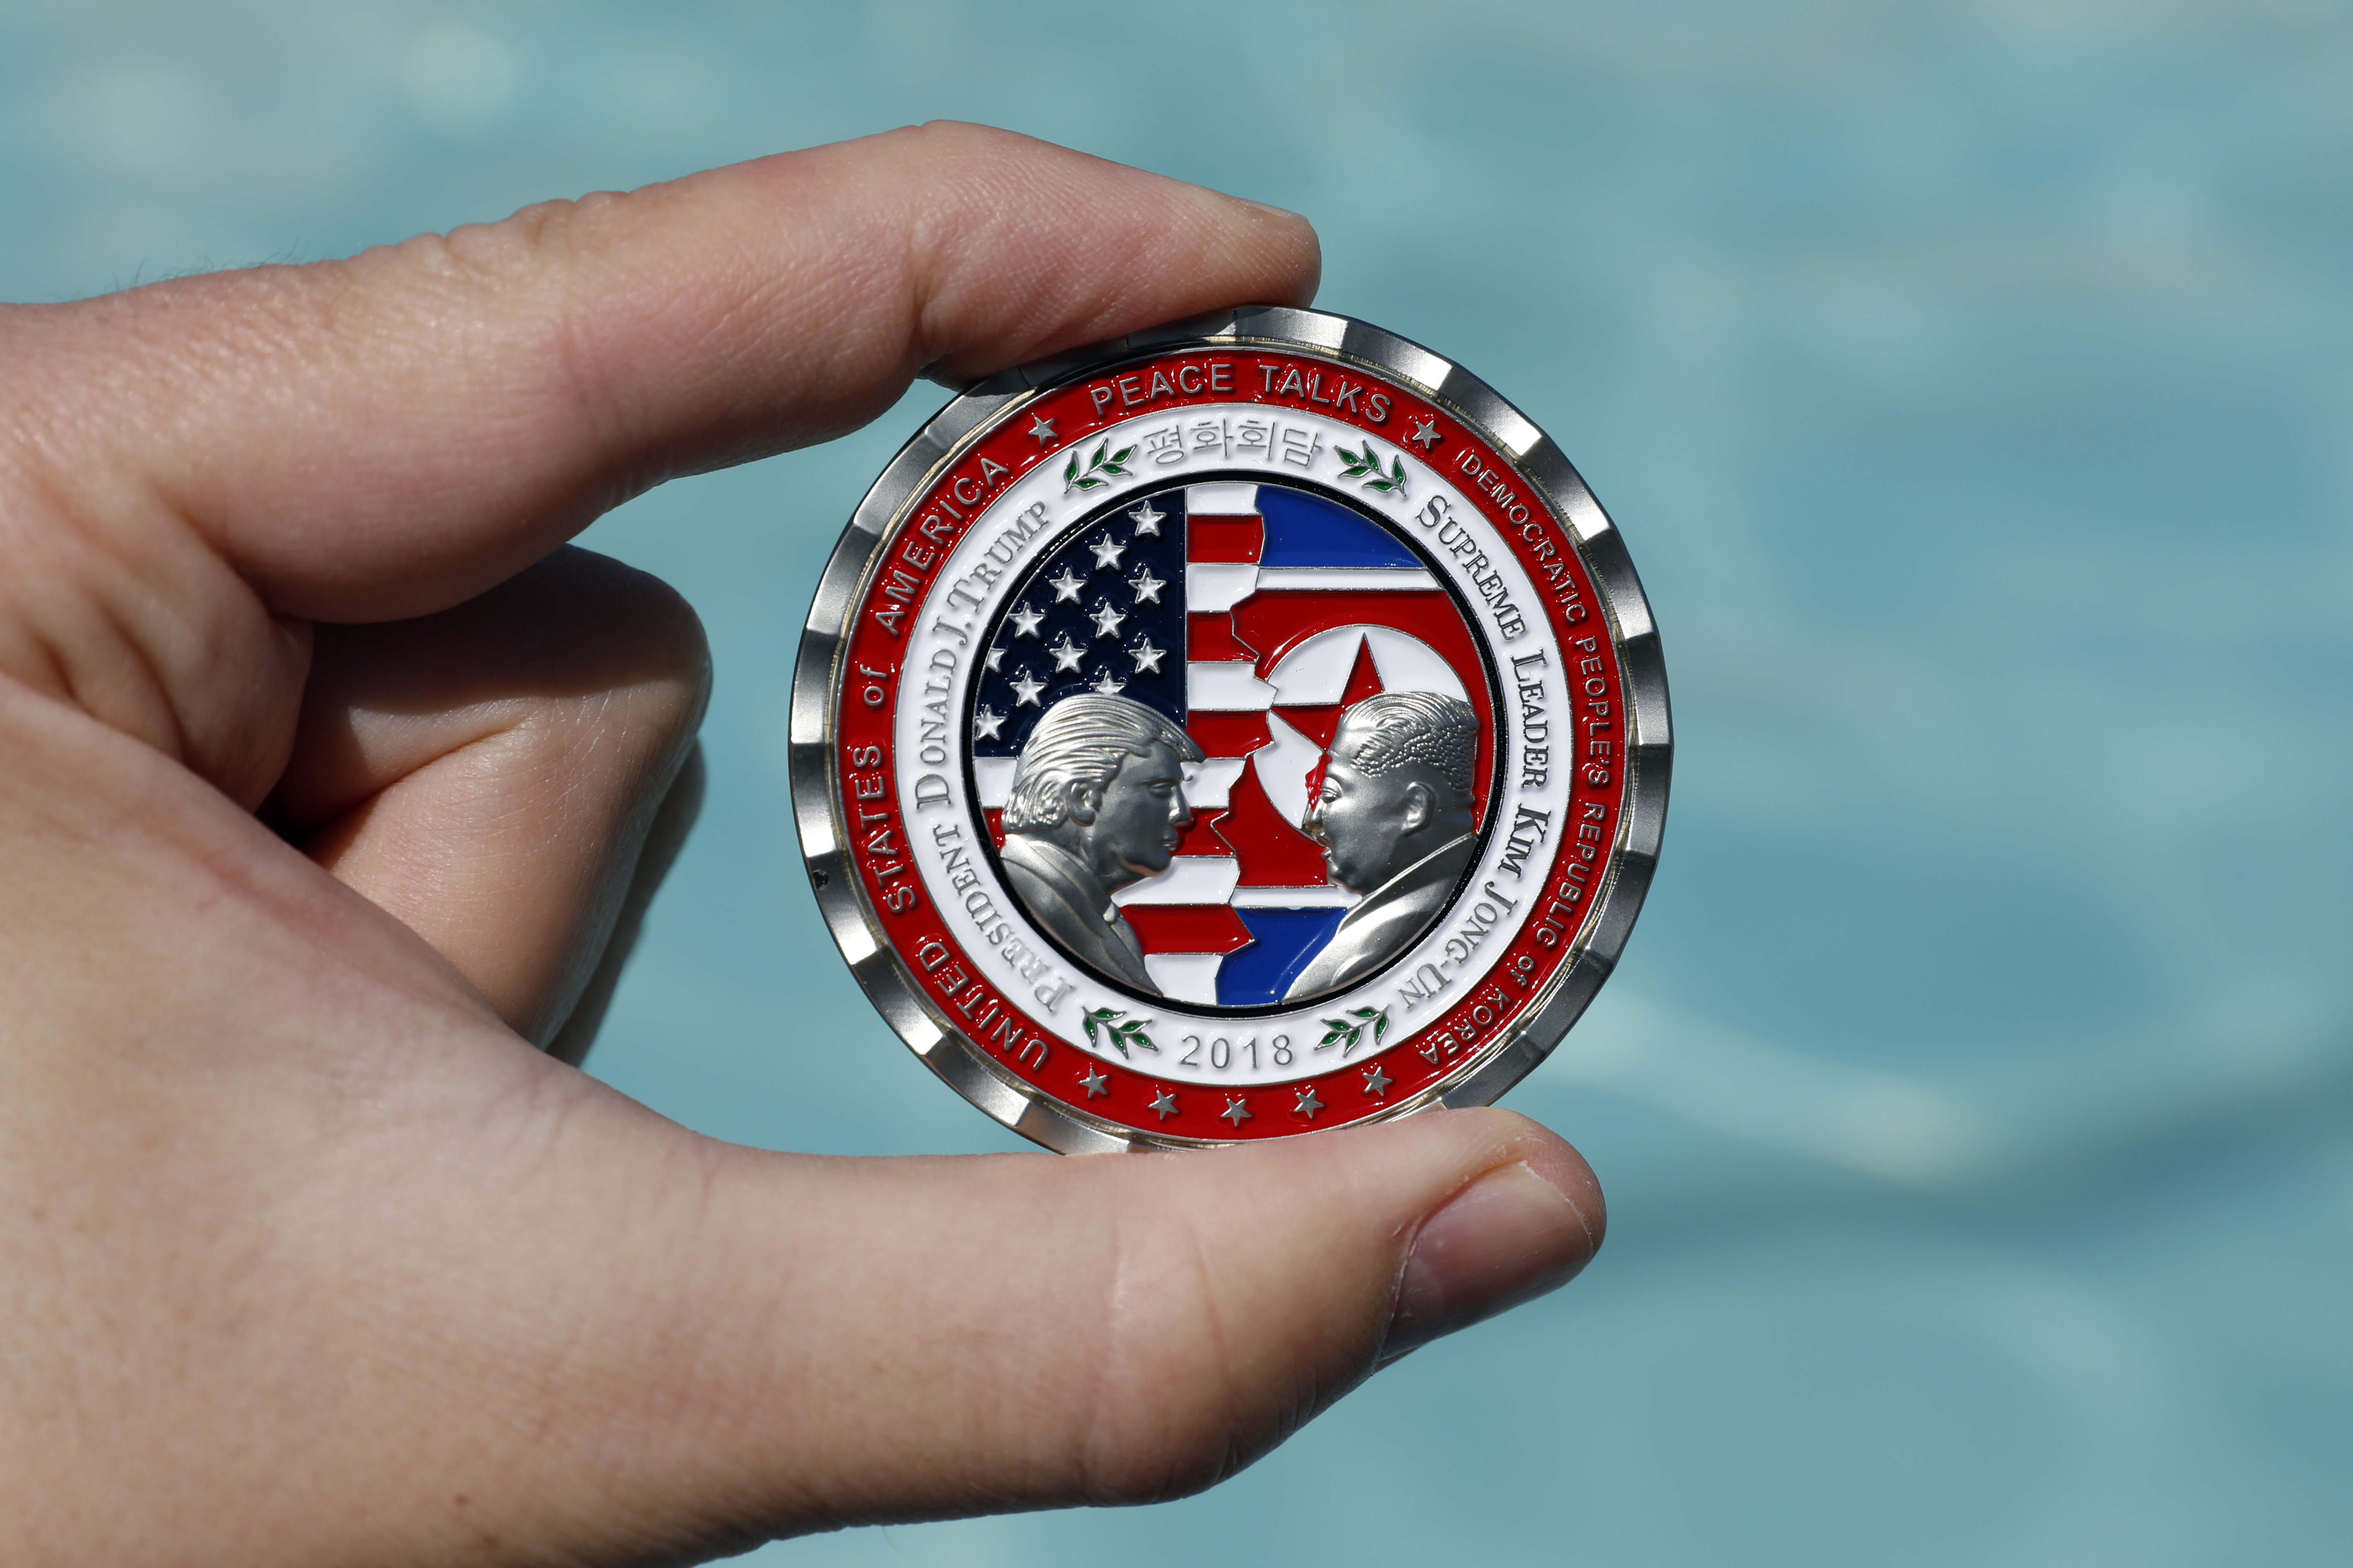 A commemorative coin released by the White House for a potential  peace summit,  featuring the names and silhouettes of U.S. President Donald Trump and North Korean leader Kim Jung Un.